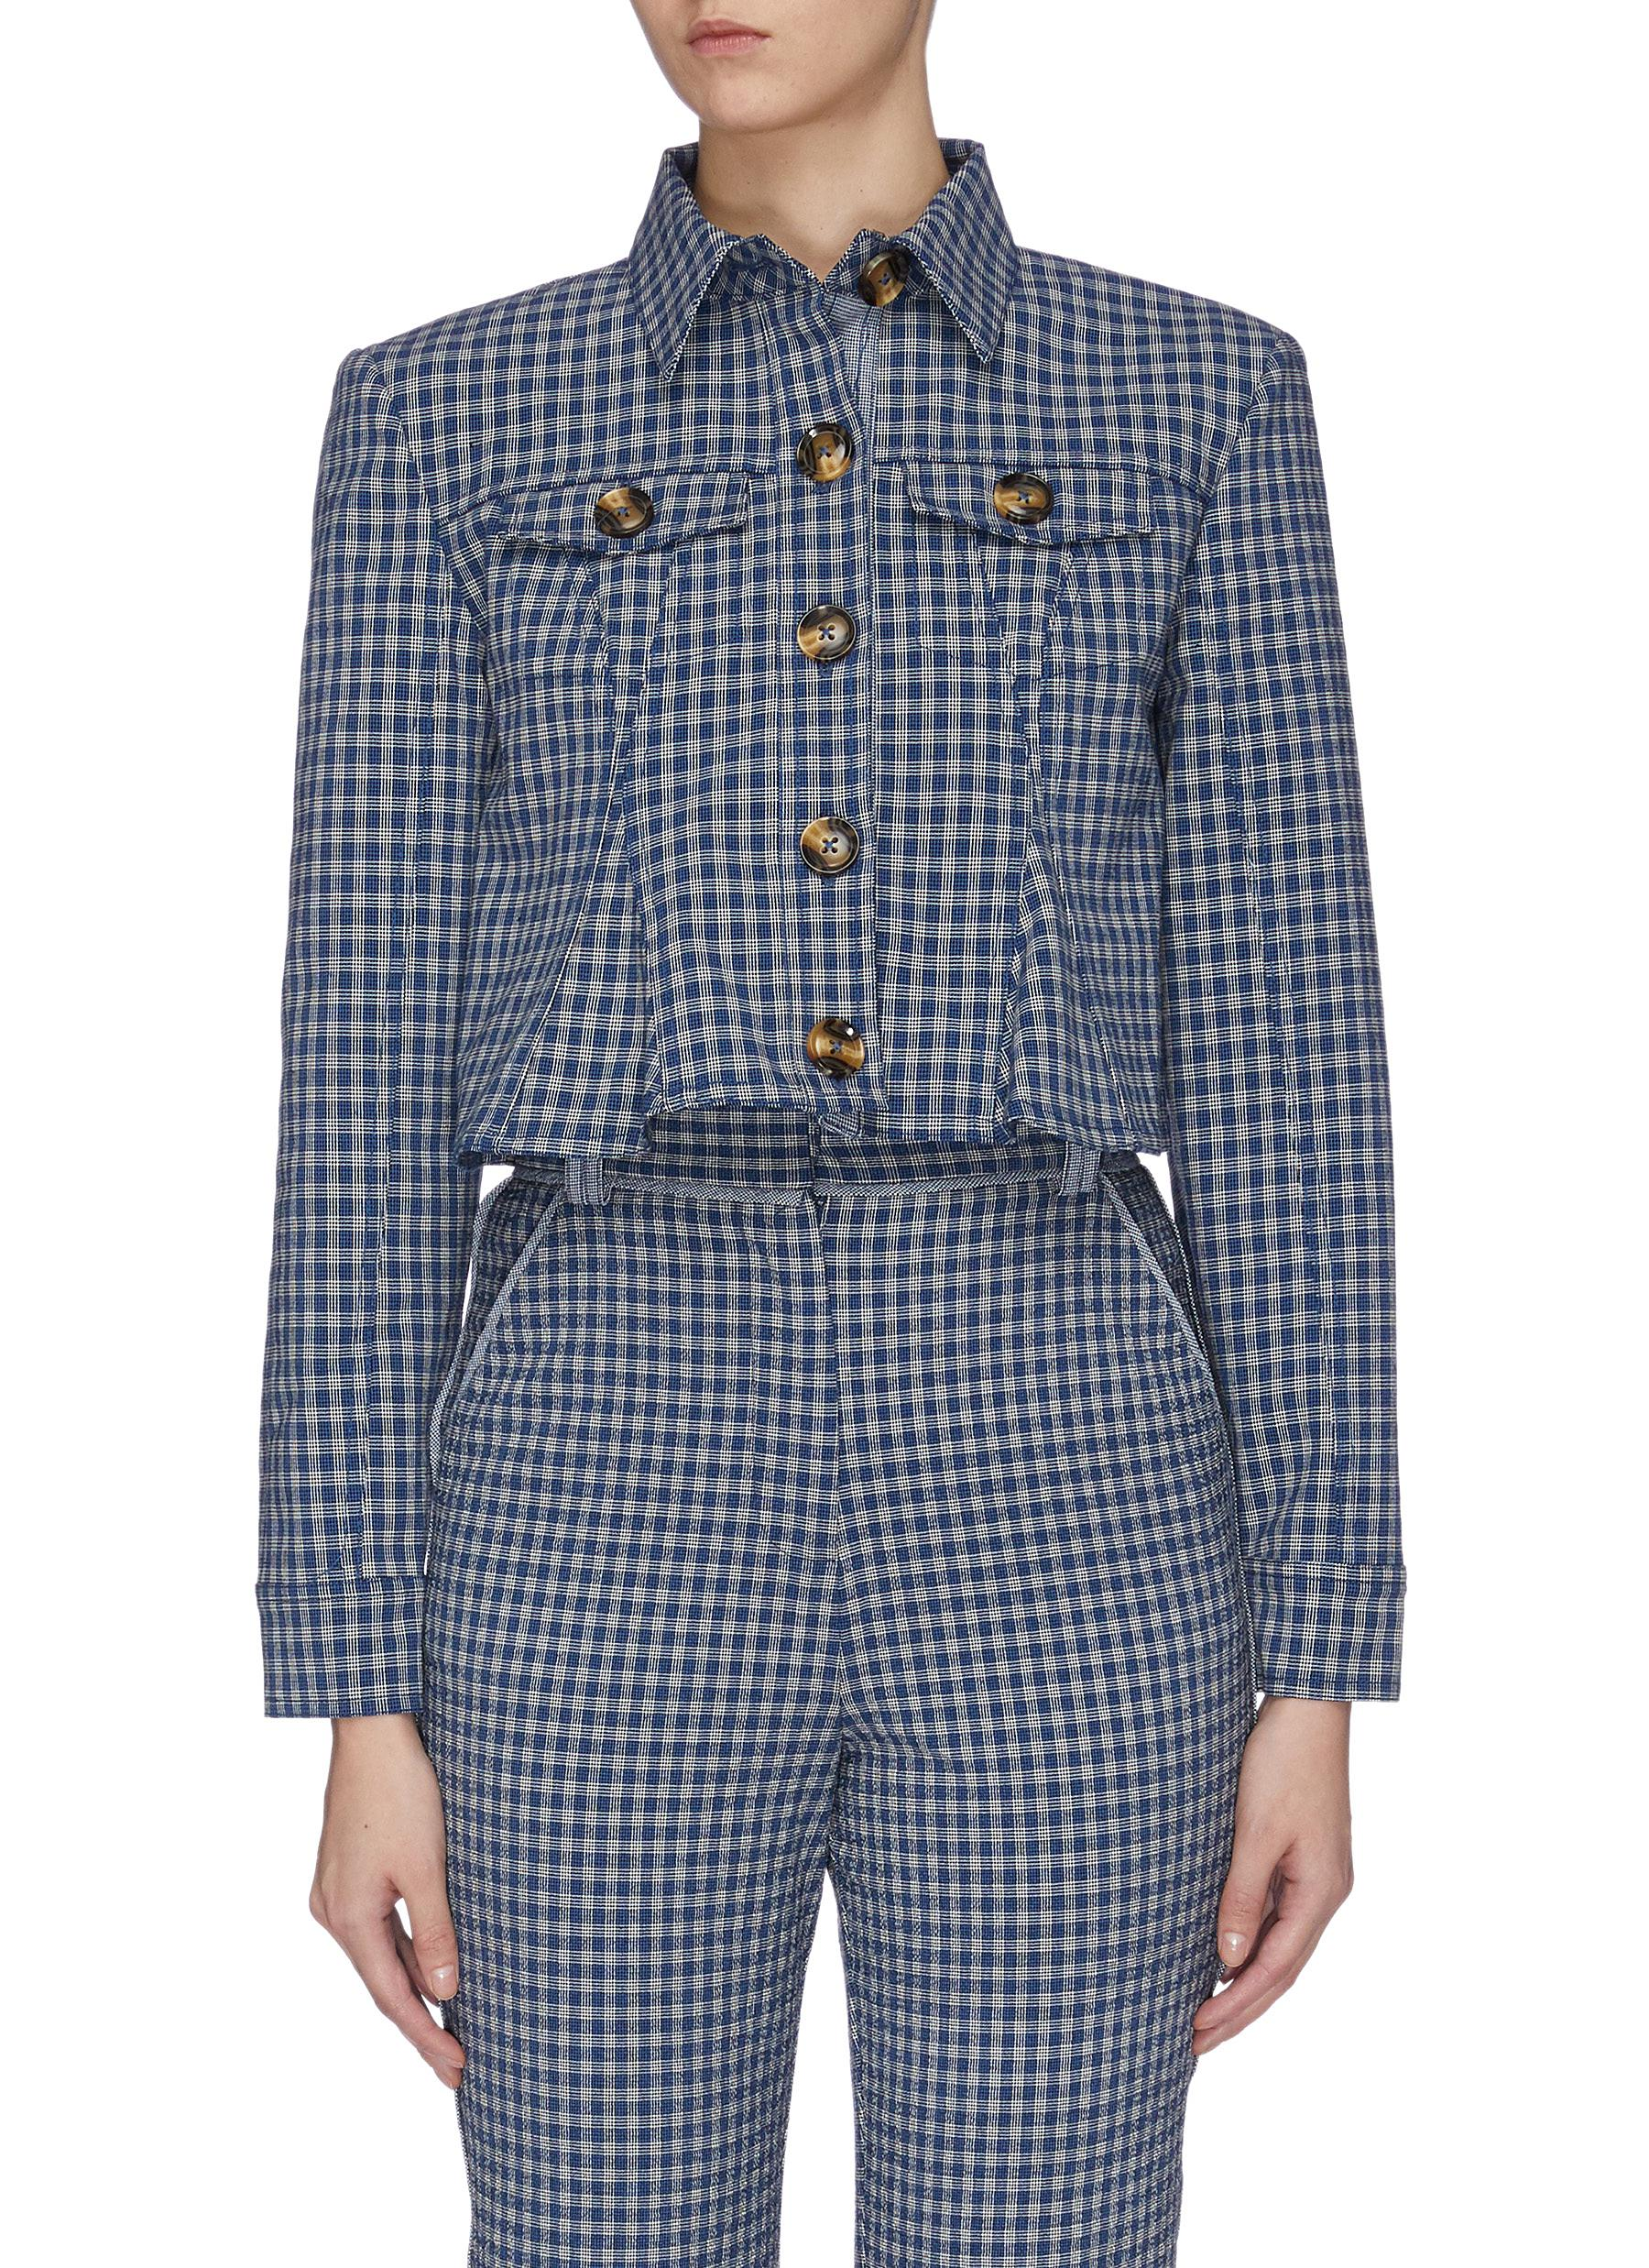 Levels gingham check cropped peplum jacket by C/Meo Collective